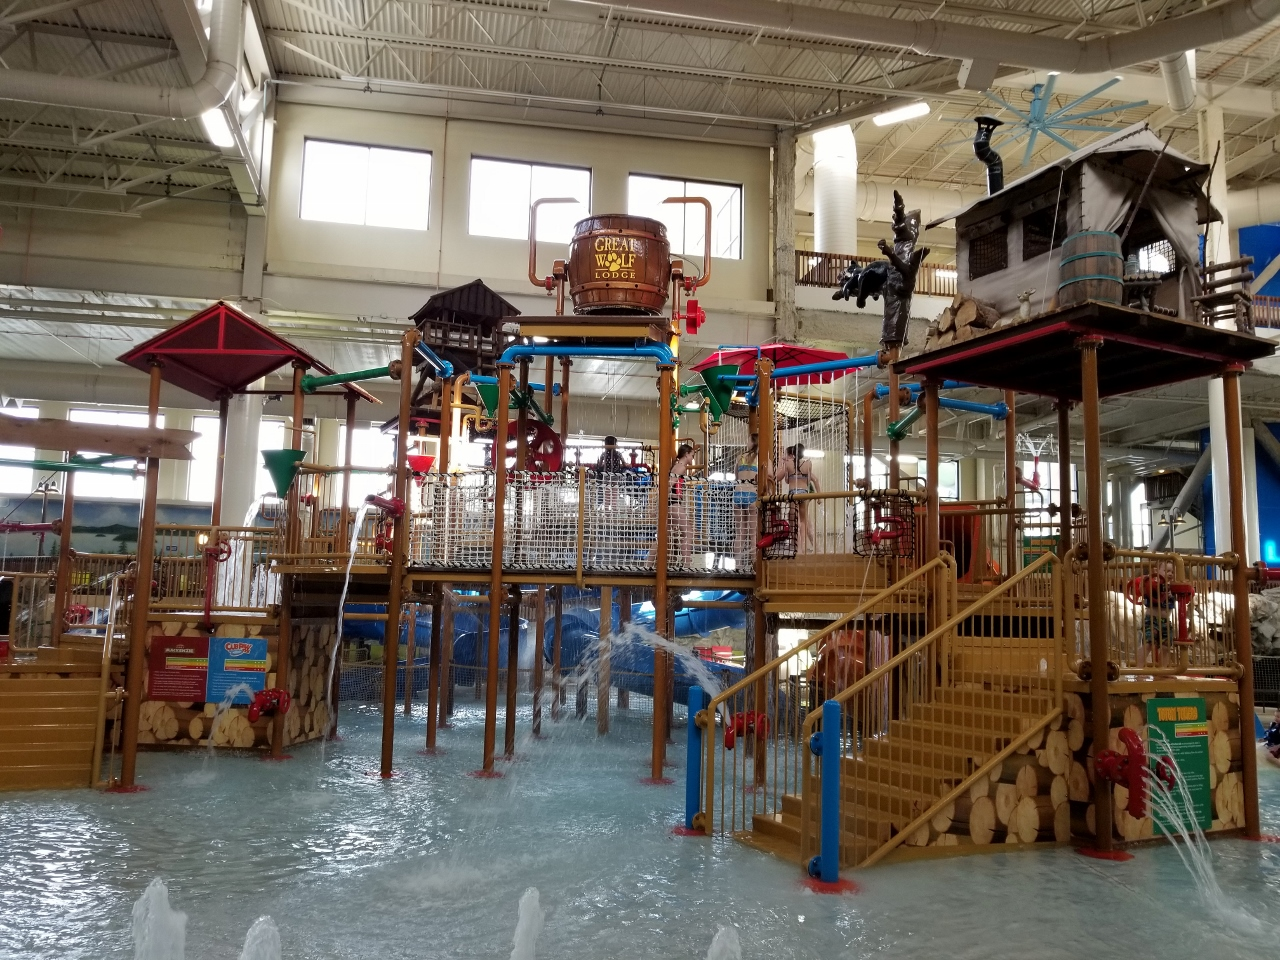 fort mackenzie water park great wolf lodge in bloomington minnesota